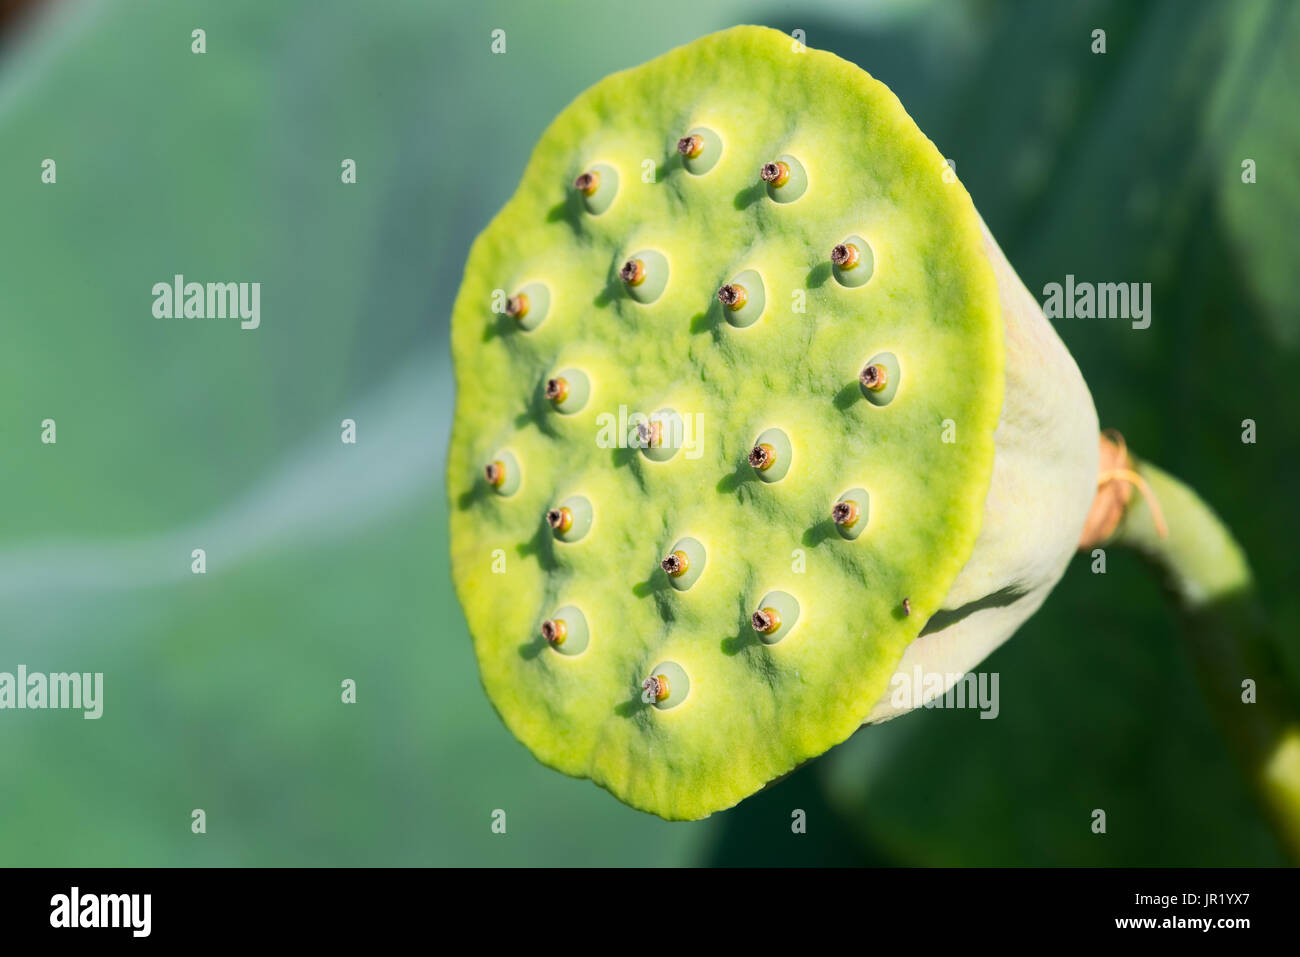 water lily seed pod flower stock photos water lily seed pod flower